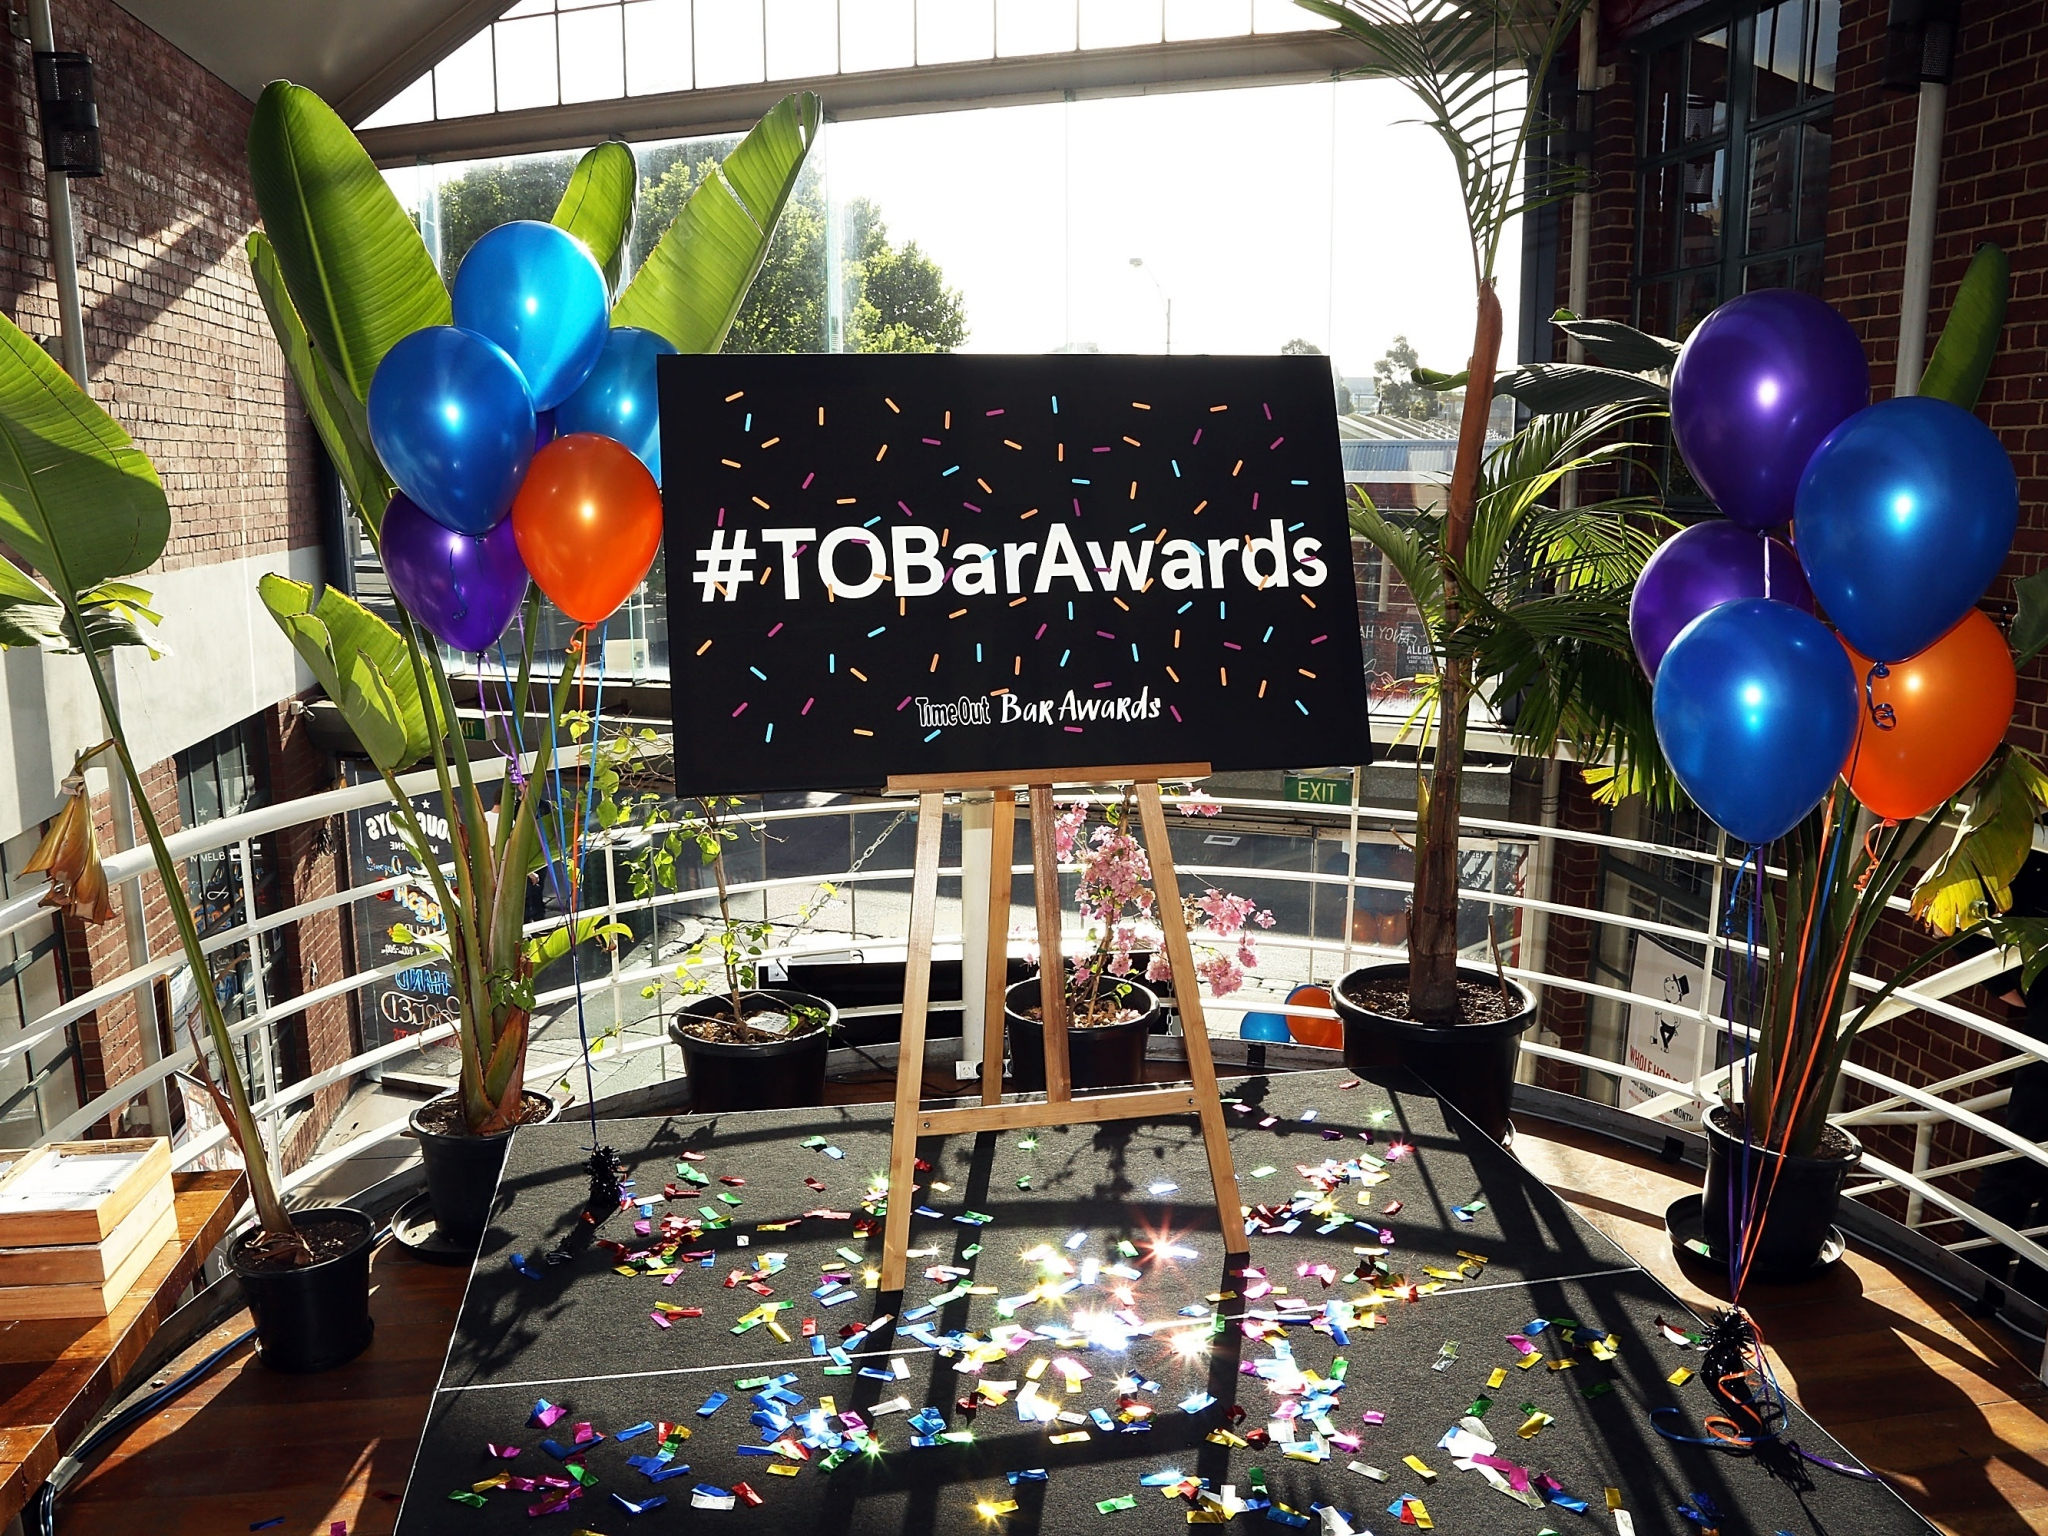 Win a double pass to the Time Out Bar Awards